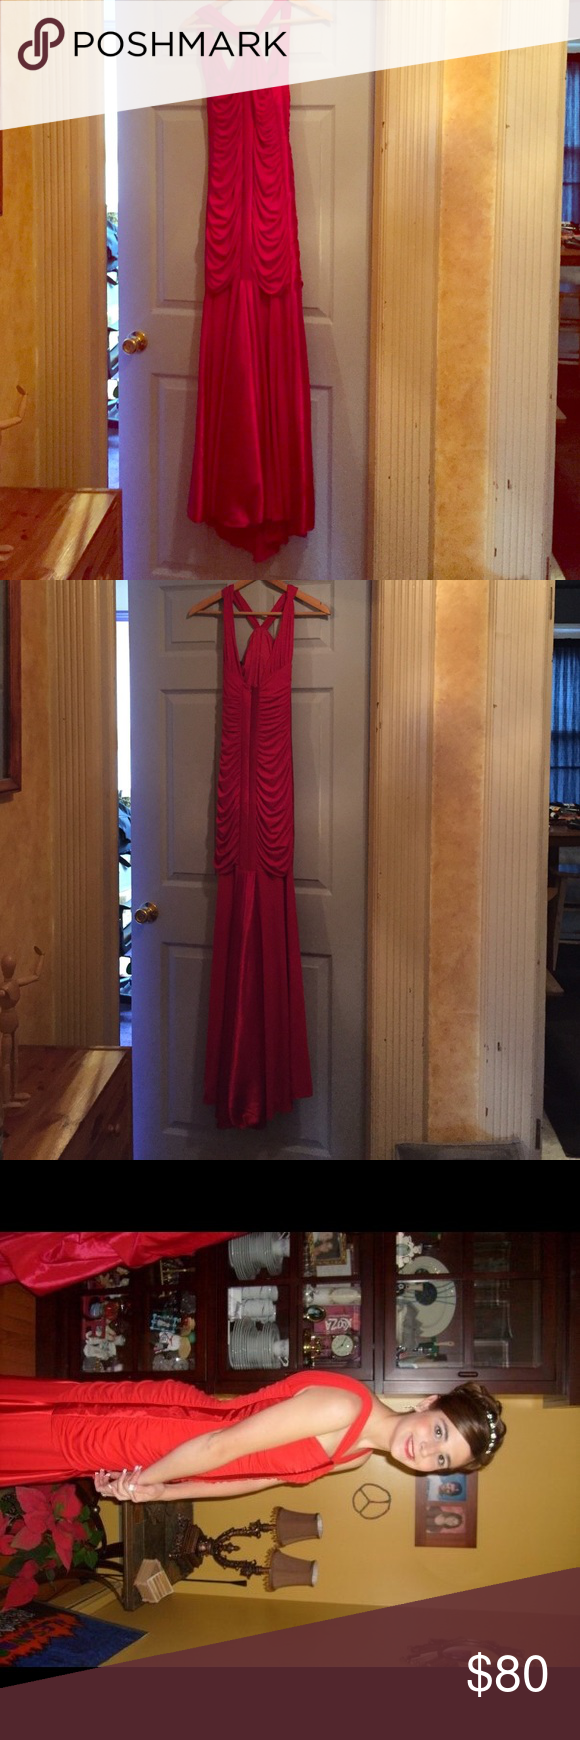 Size 13 (juniors) red prom dress. Long red gown I wore to my eighth grade prom once. Zipper goes up the back. Cinched halfway down the gown and then free flowing until the ground. Jessica McClintock Dresses Prom